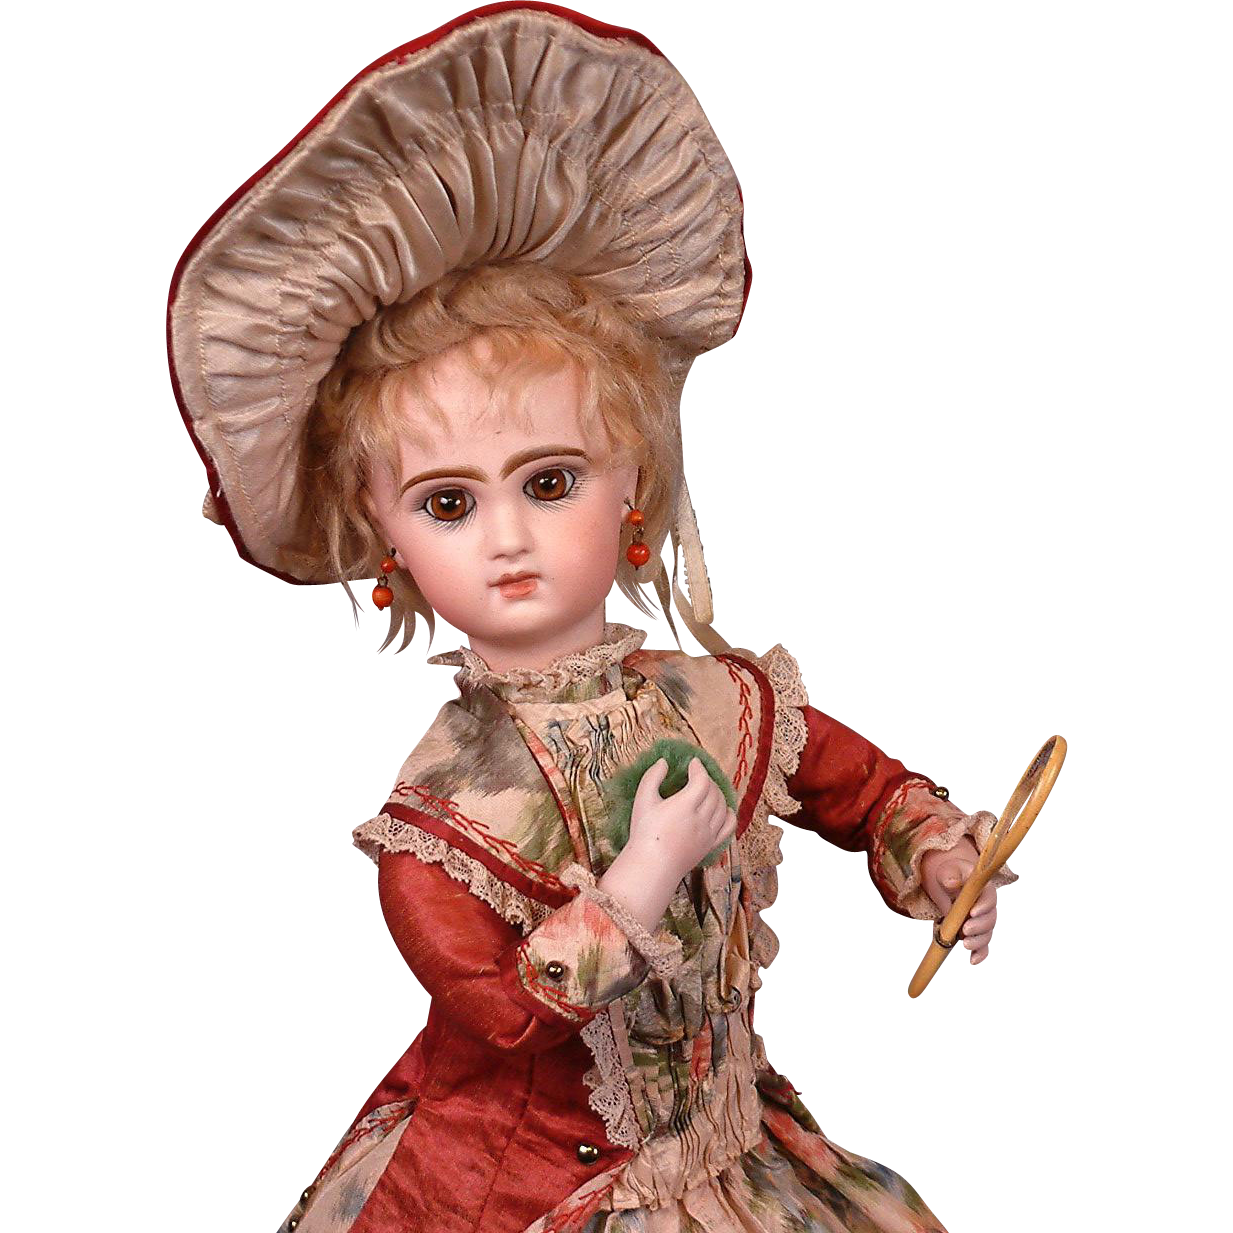 """*Collector's Desire* Tete Jumeau """"Powder Puff Lady* Musical Automaton with Total Height 21.5"""""""